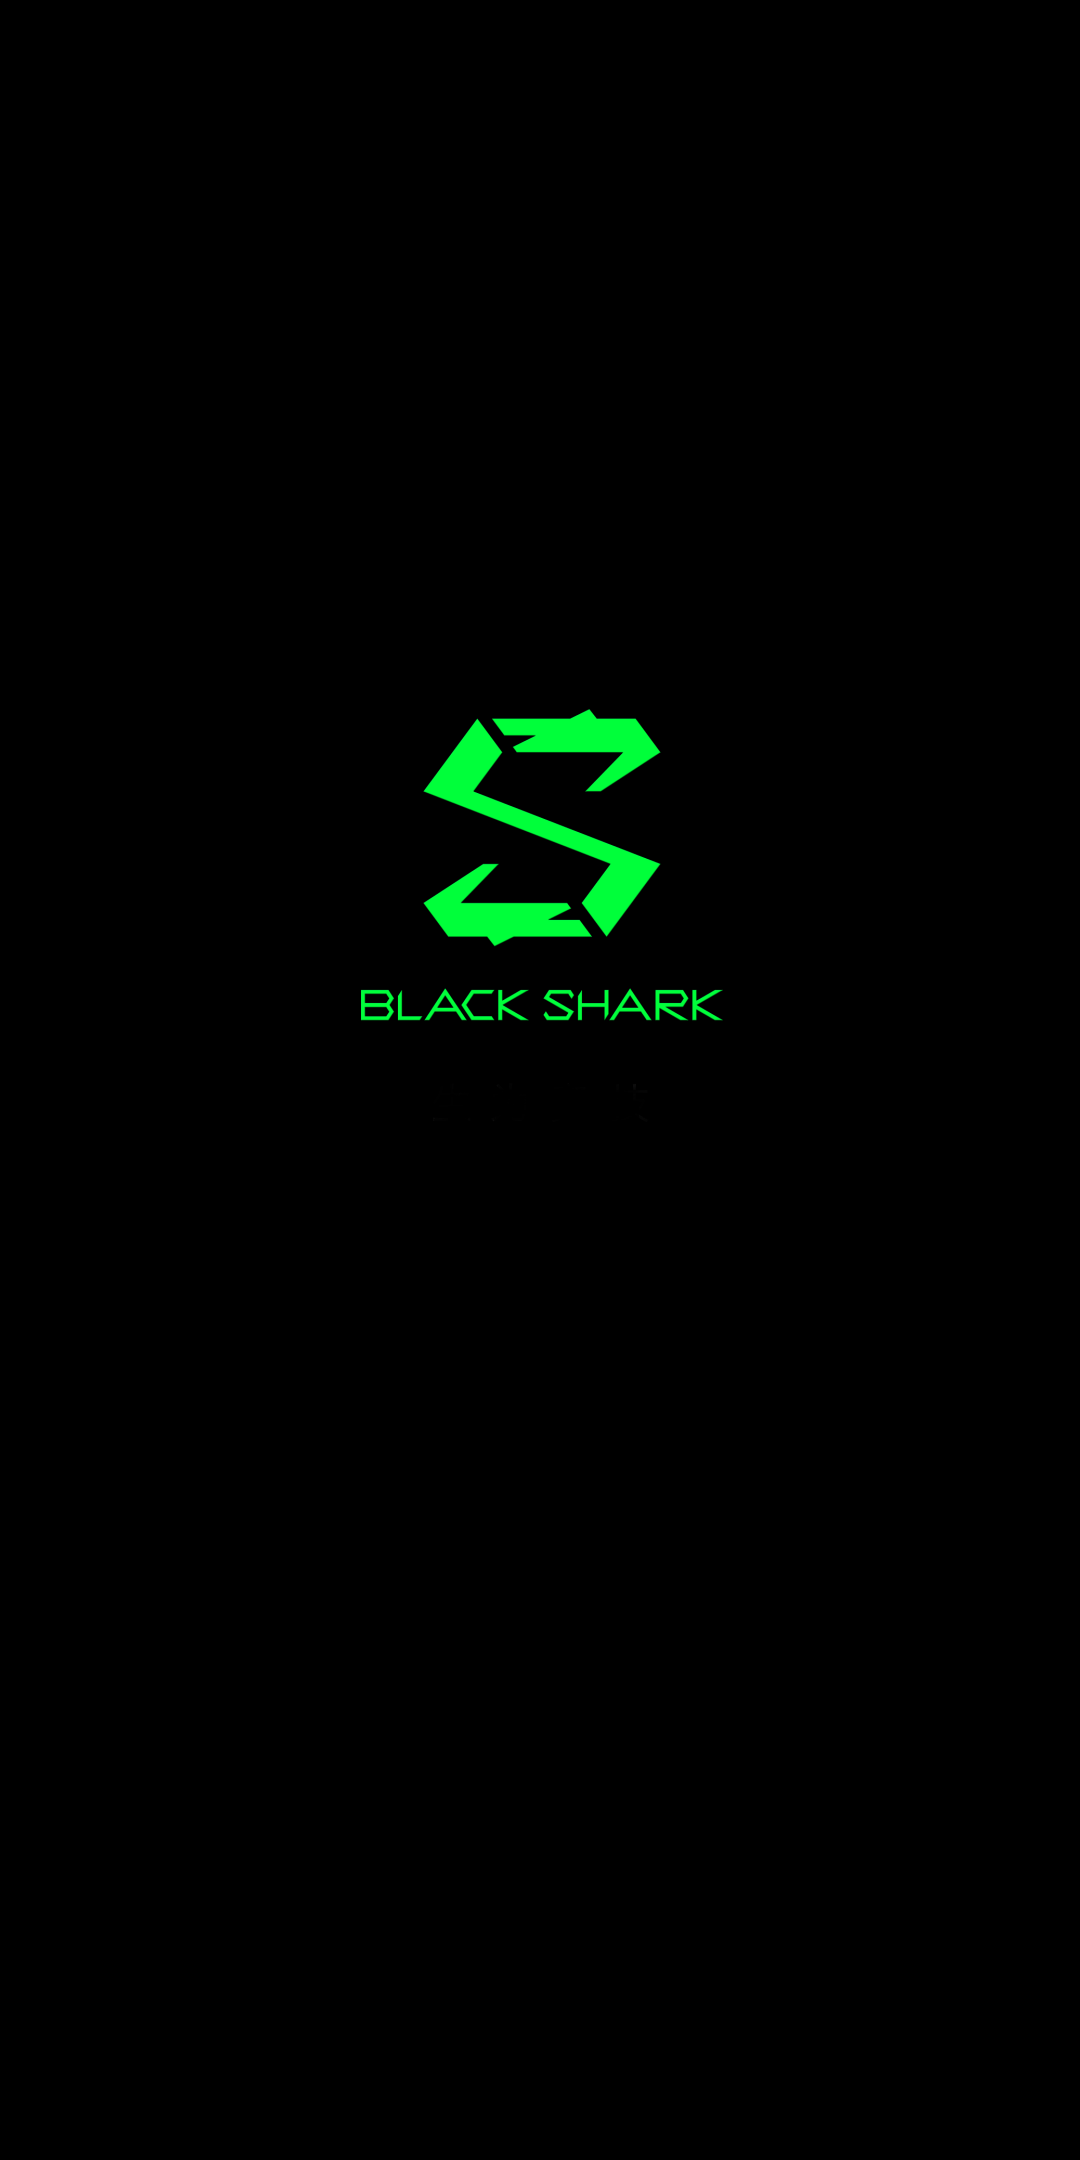 Download Xiaomi Black Shark 2 Wallpapers 37 Fhd Walls Droidviews Xiaomi Wallpapers Dark Wallpaper Iphone Stock Wallpaper